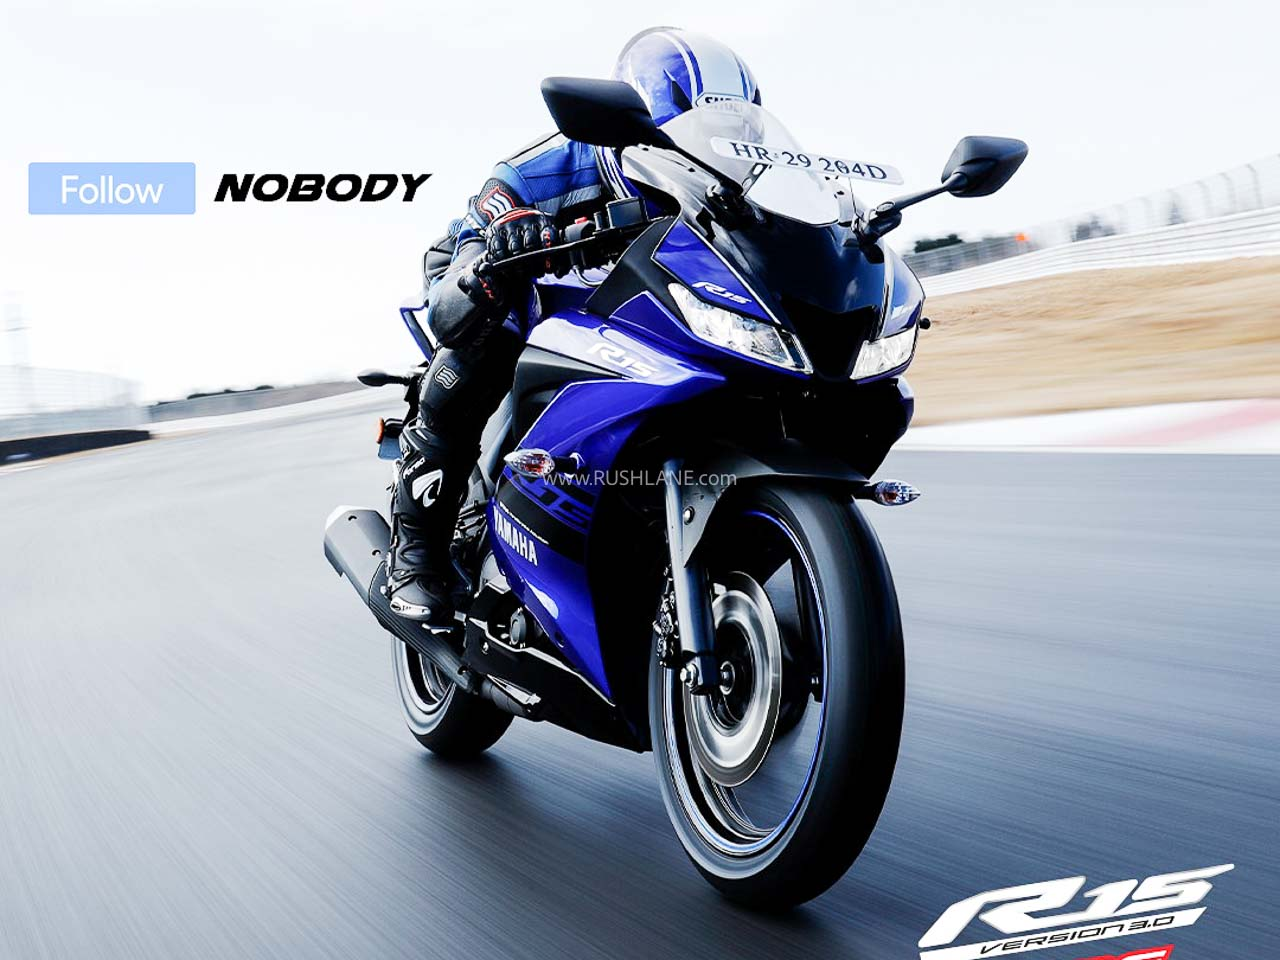 Yamaha R15 prices increase